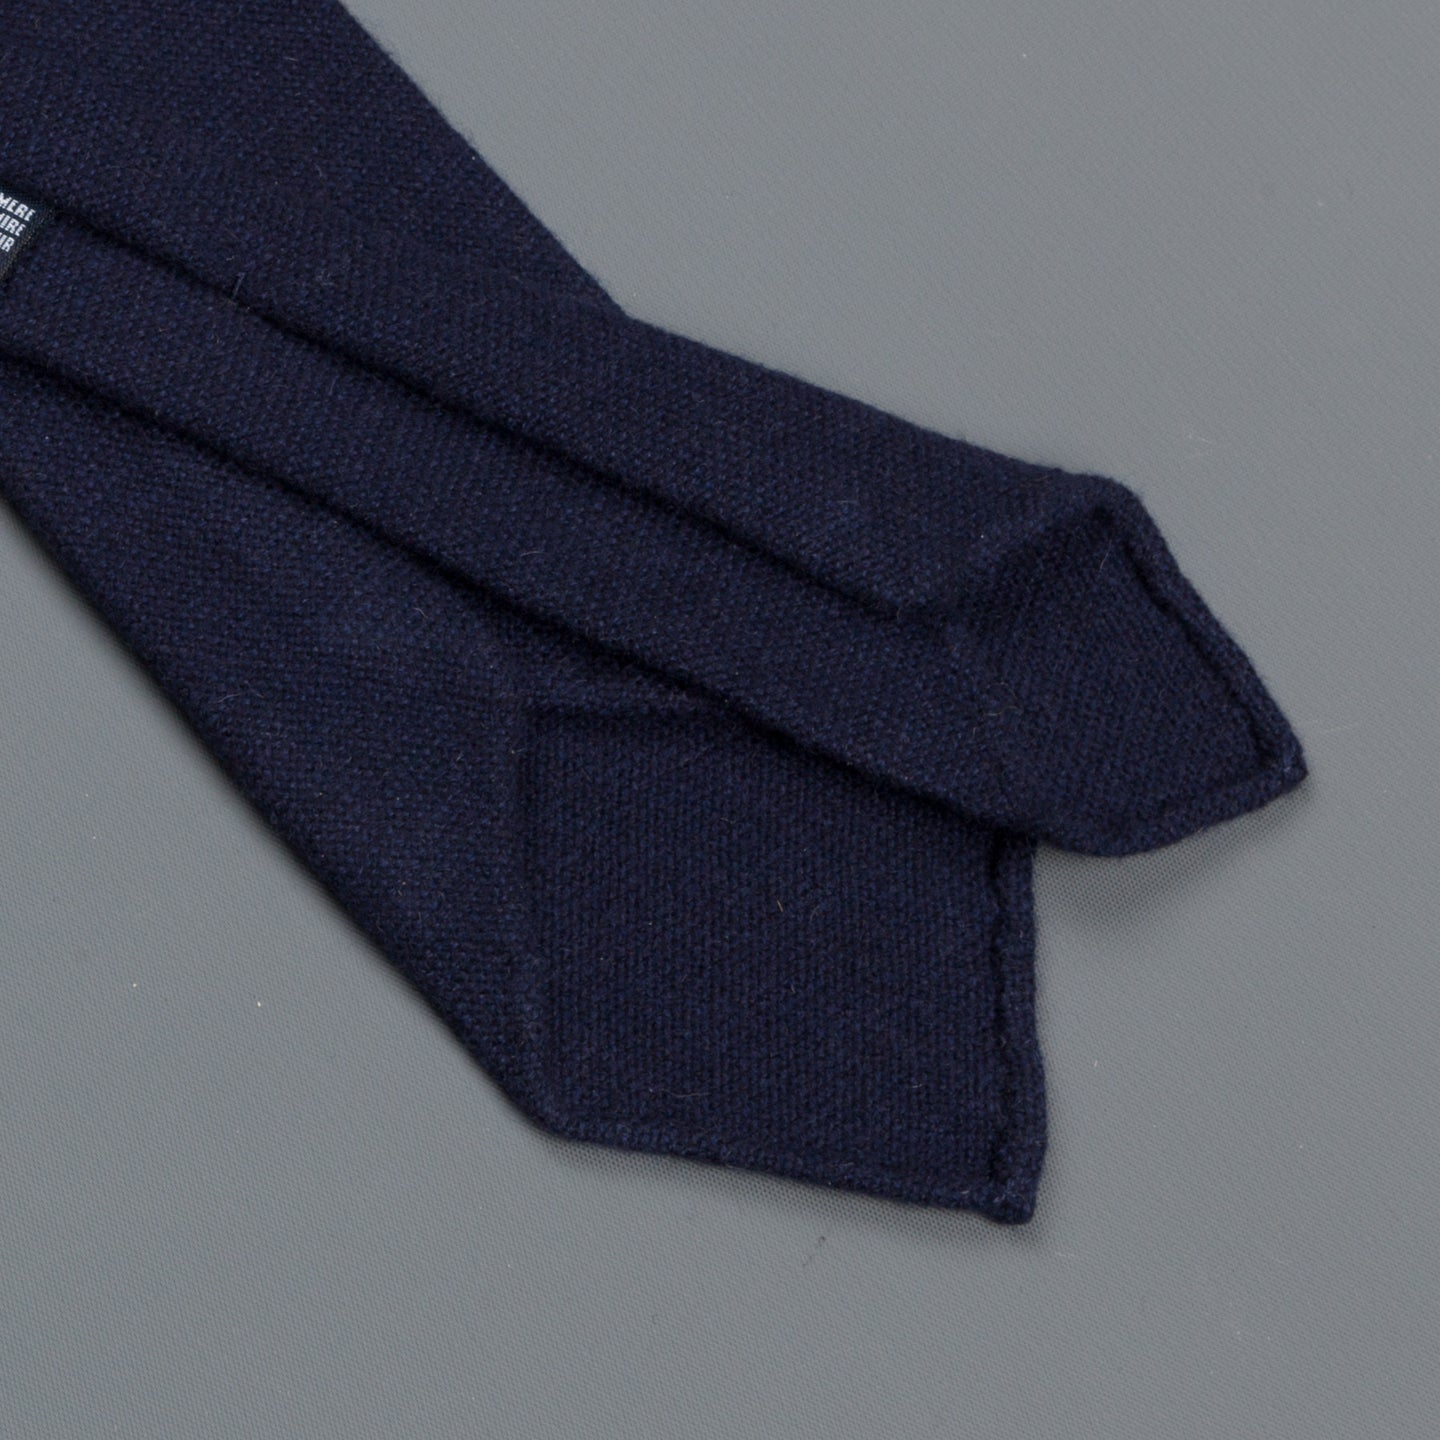 Drakes Cashmere tie untipped navy